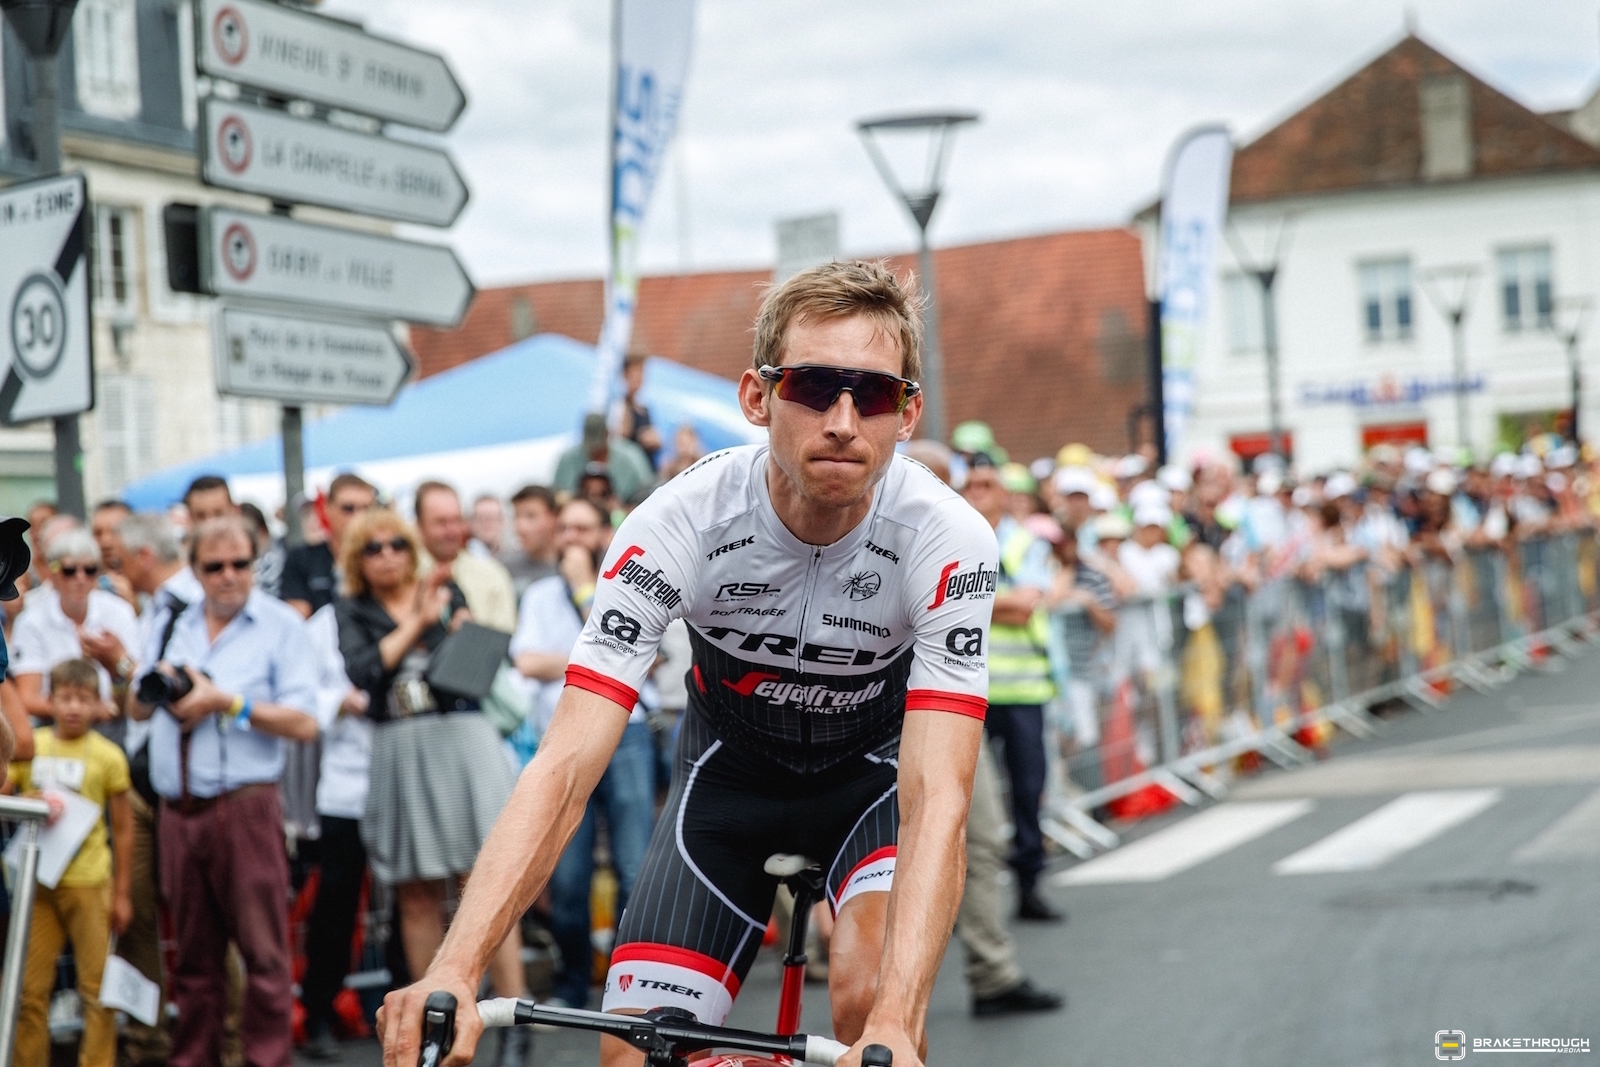 Bauke Mollema (Trek-Segafredo) struggled the final few days in the Alps, and though he sat second overall, he finished the Tour outside of the top 10. Photo: BrakeThrough Media